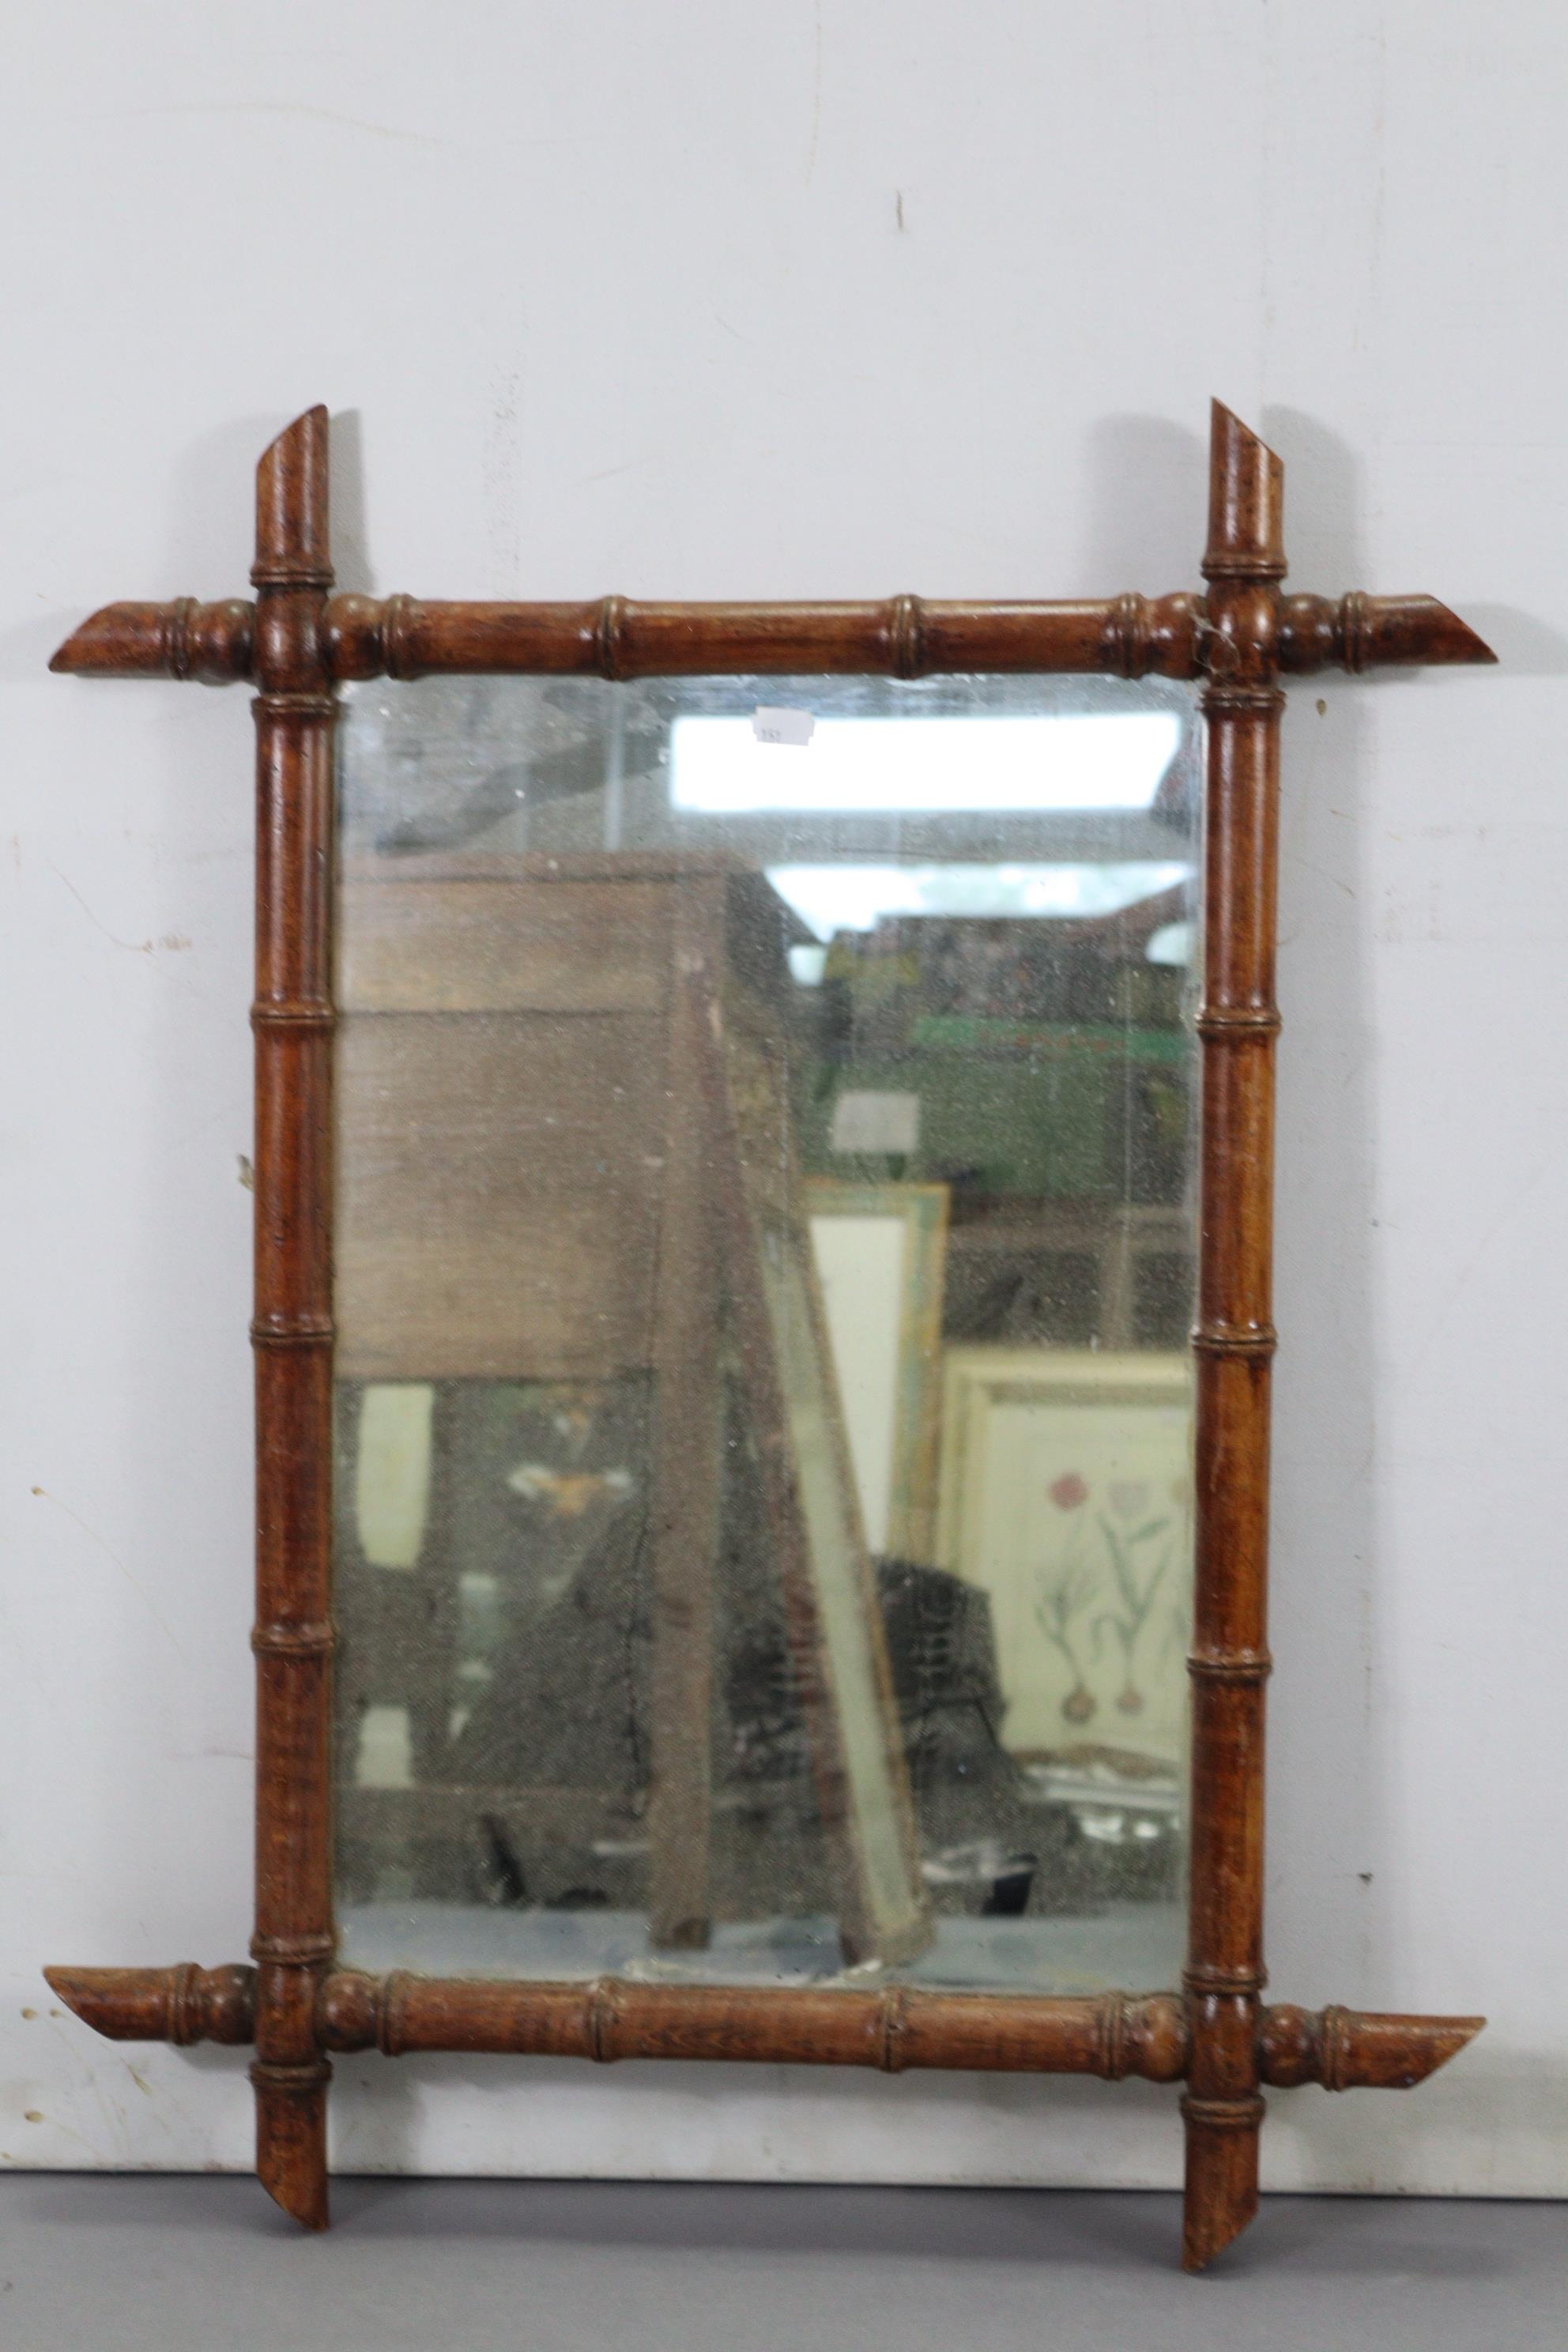 """A continental-style gilt frame pier glass, 31"""" x 16""""; together with two rectangular wall mirrors. - Image 9 of 10"""